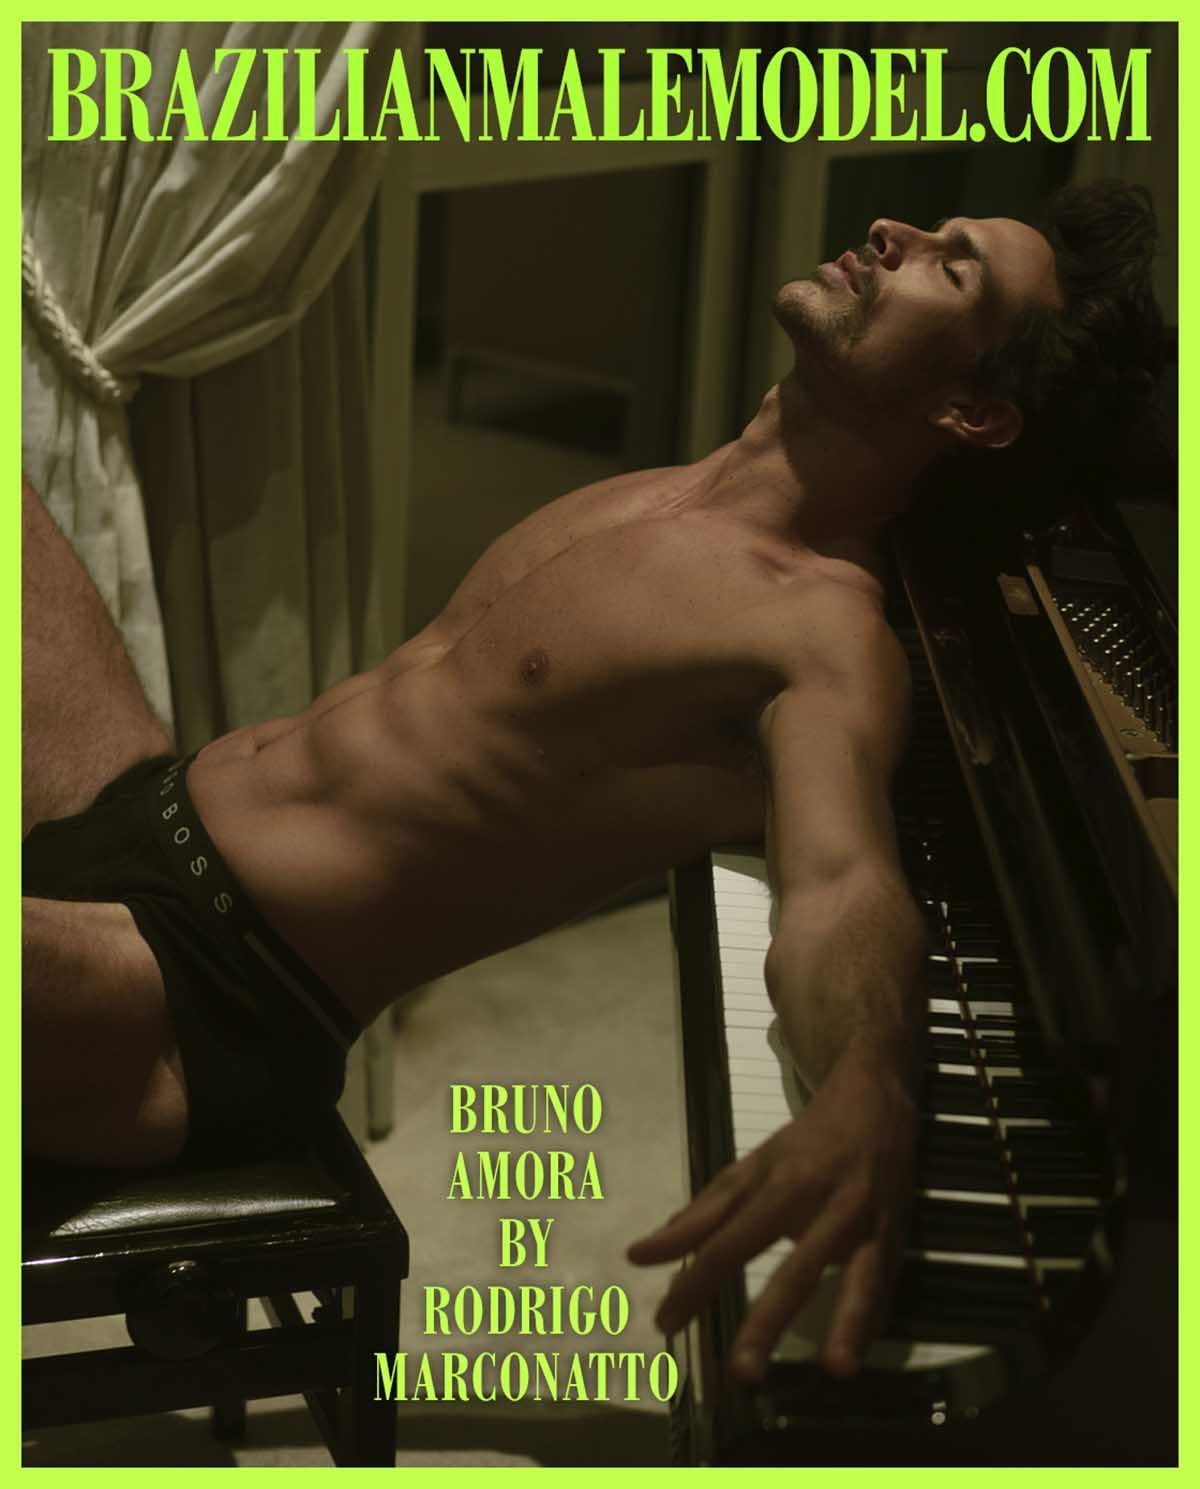 Bruno Amora by Rodrigo Marconatto